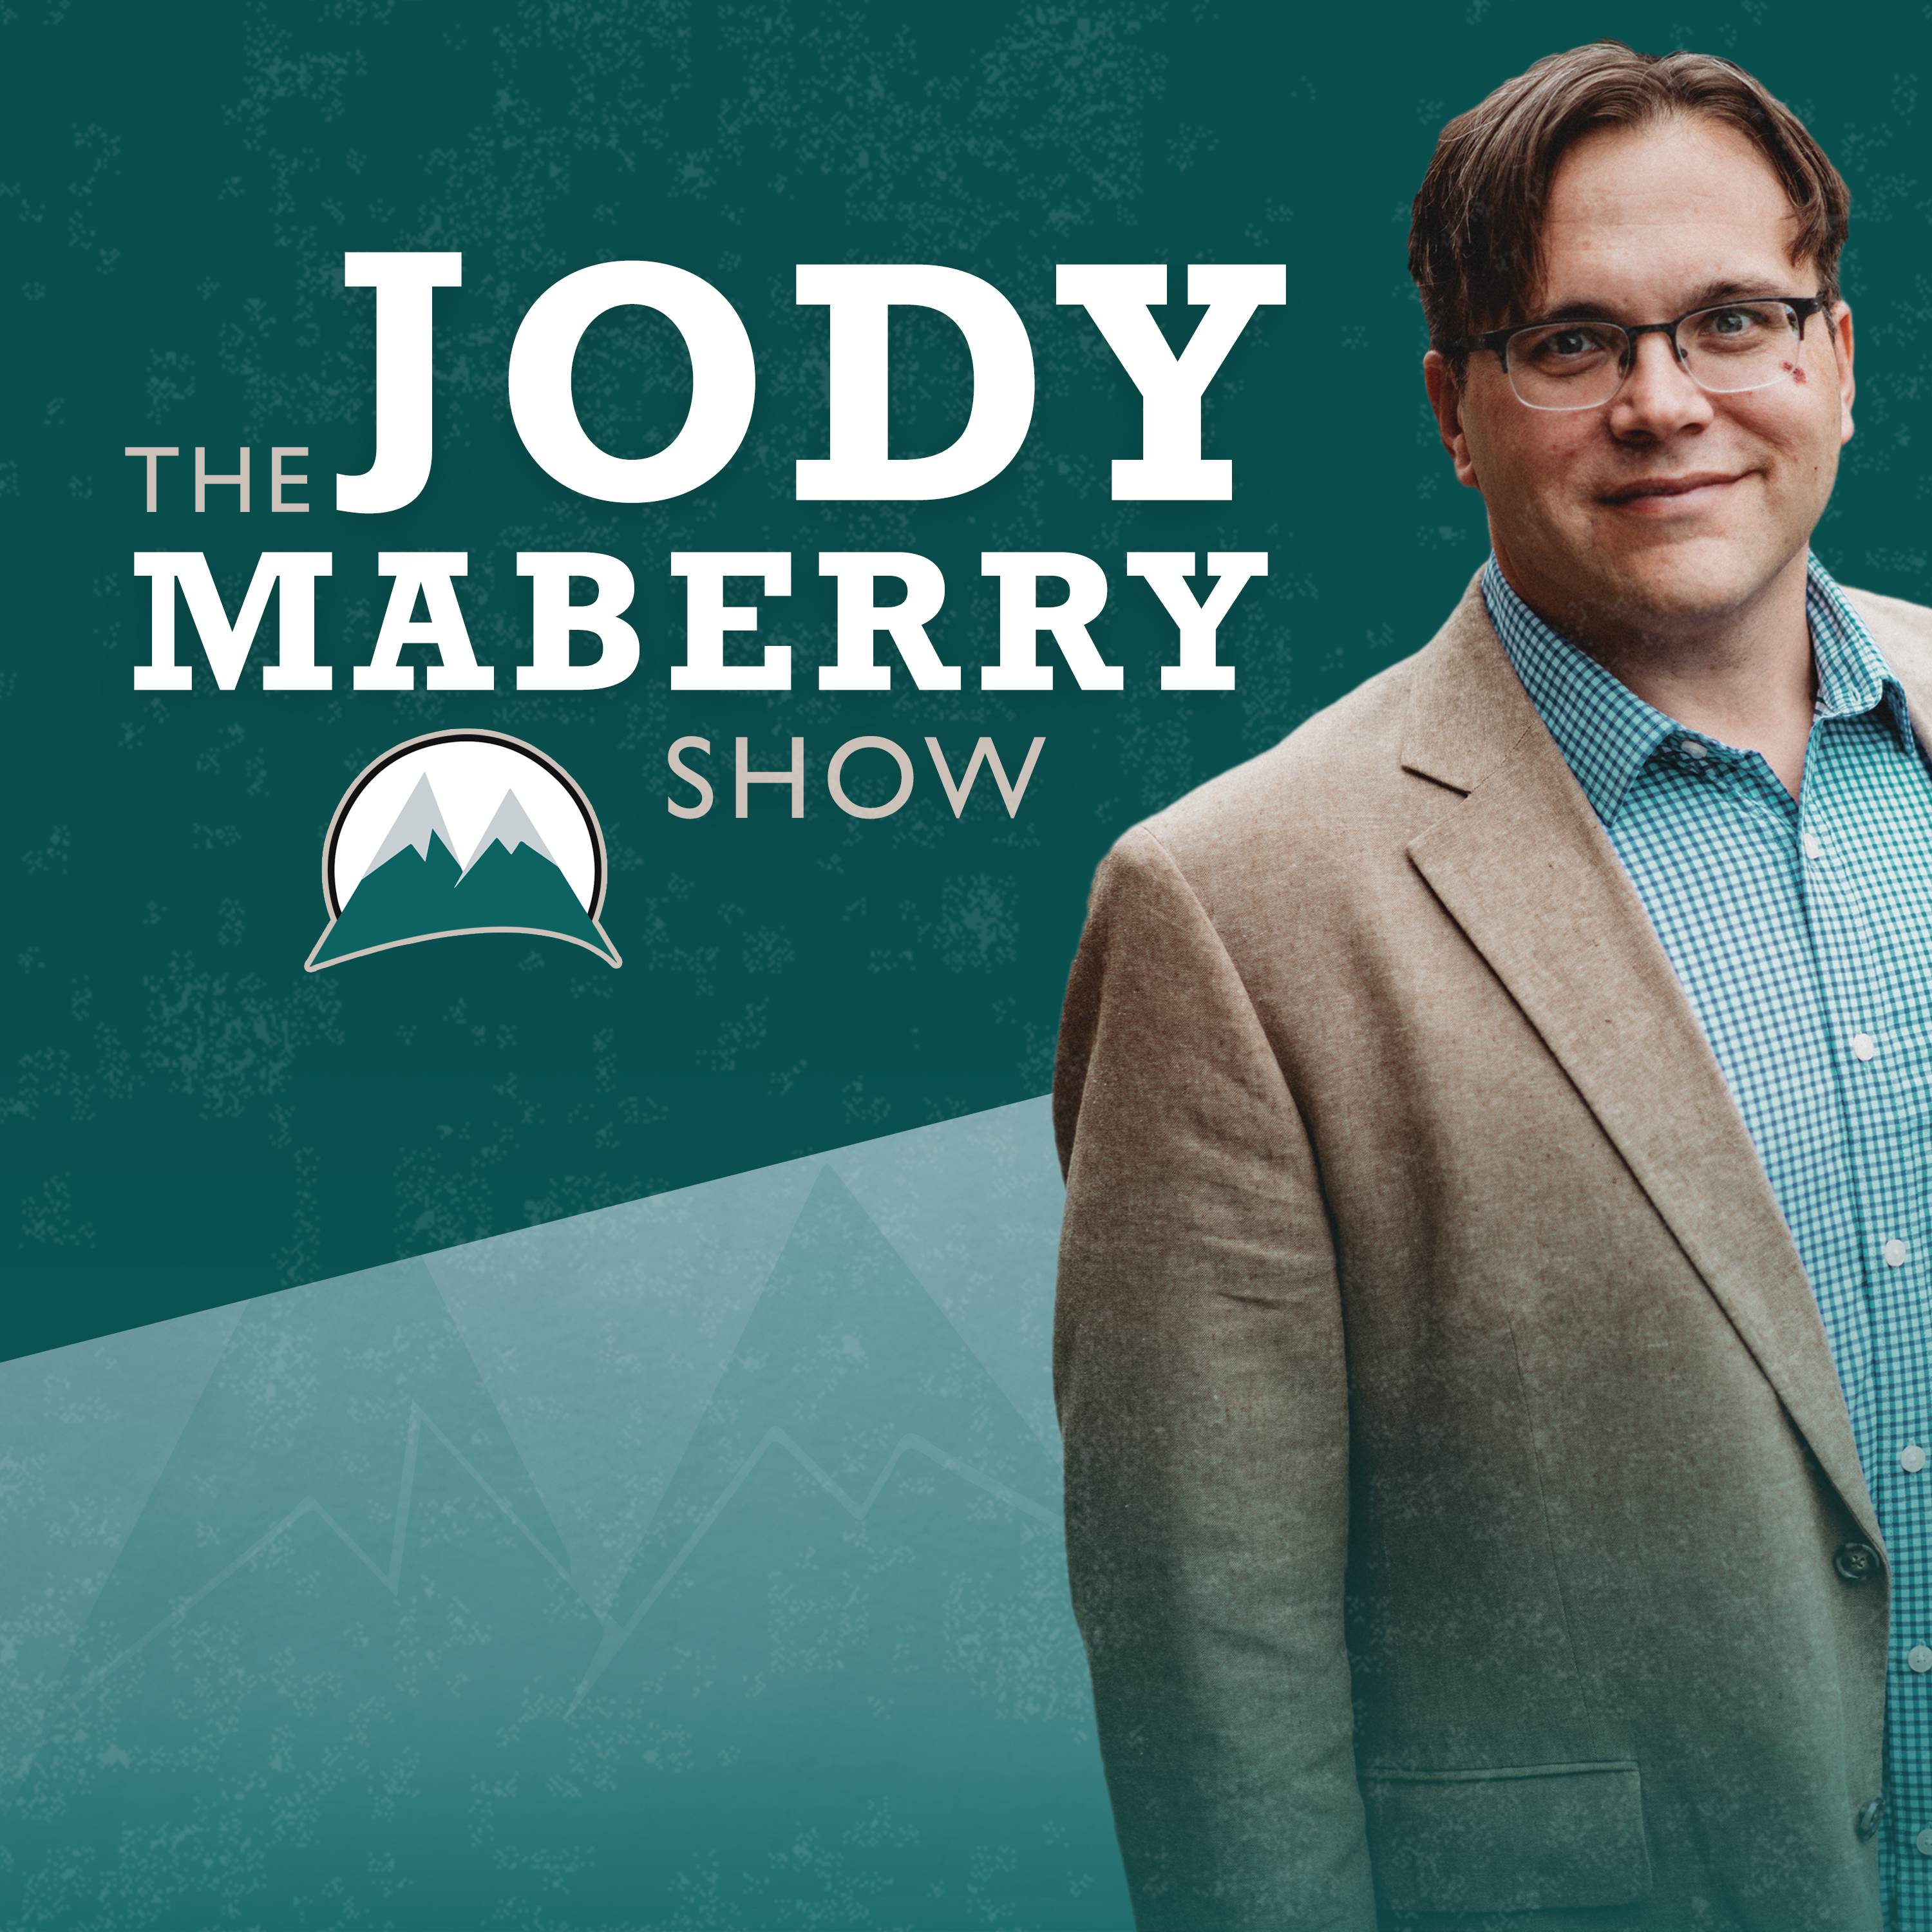 The Jody Maberry Show show art